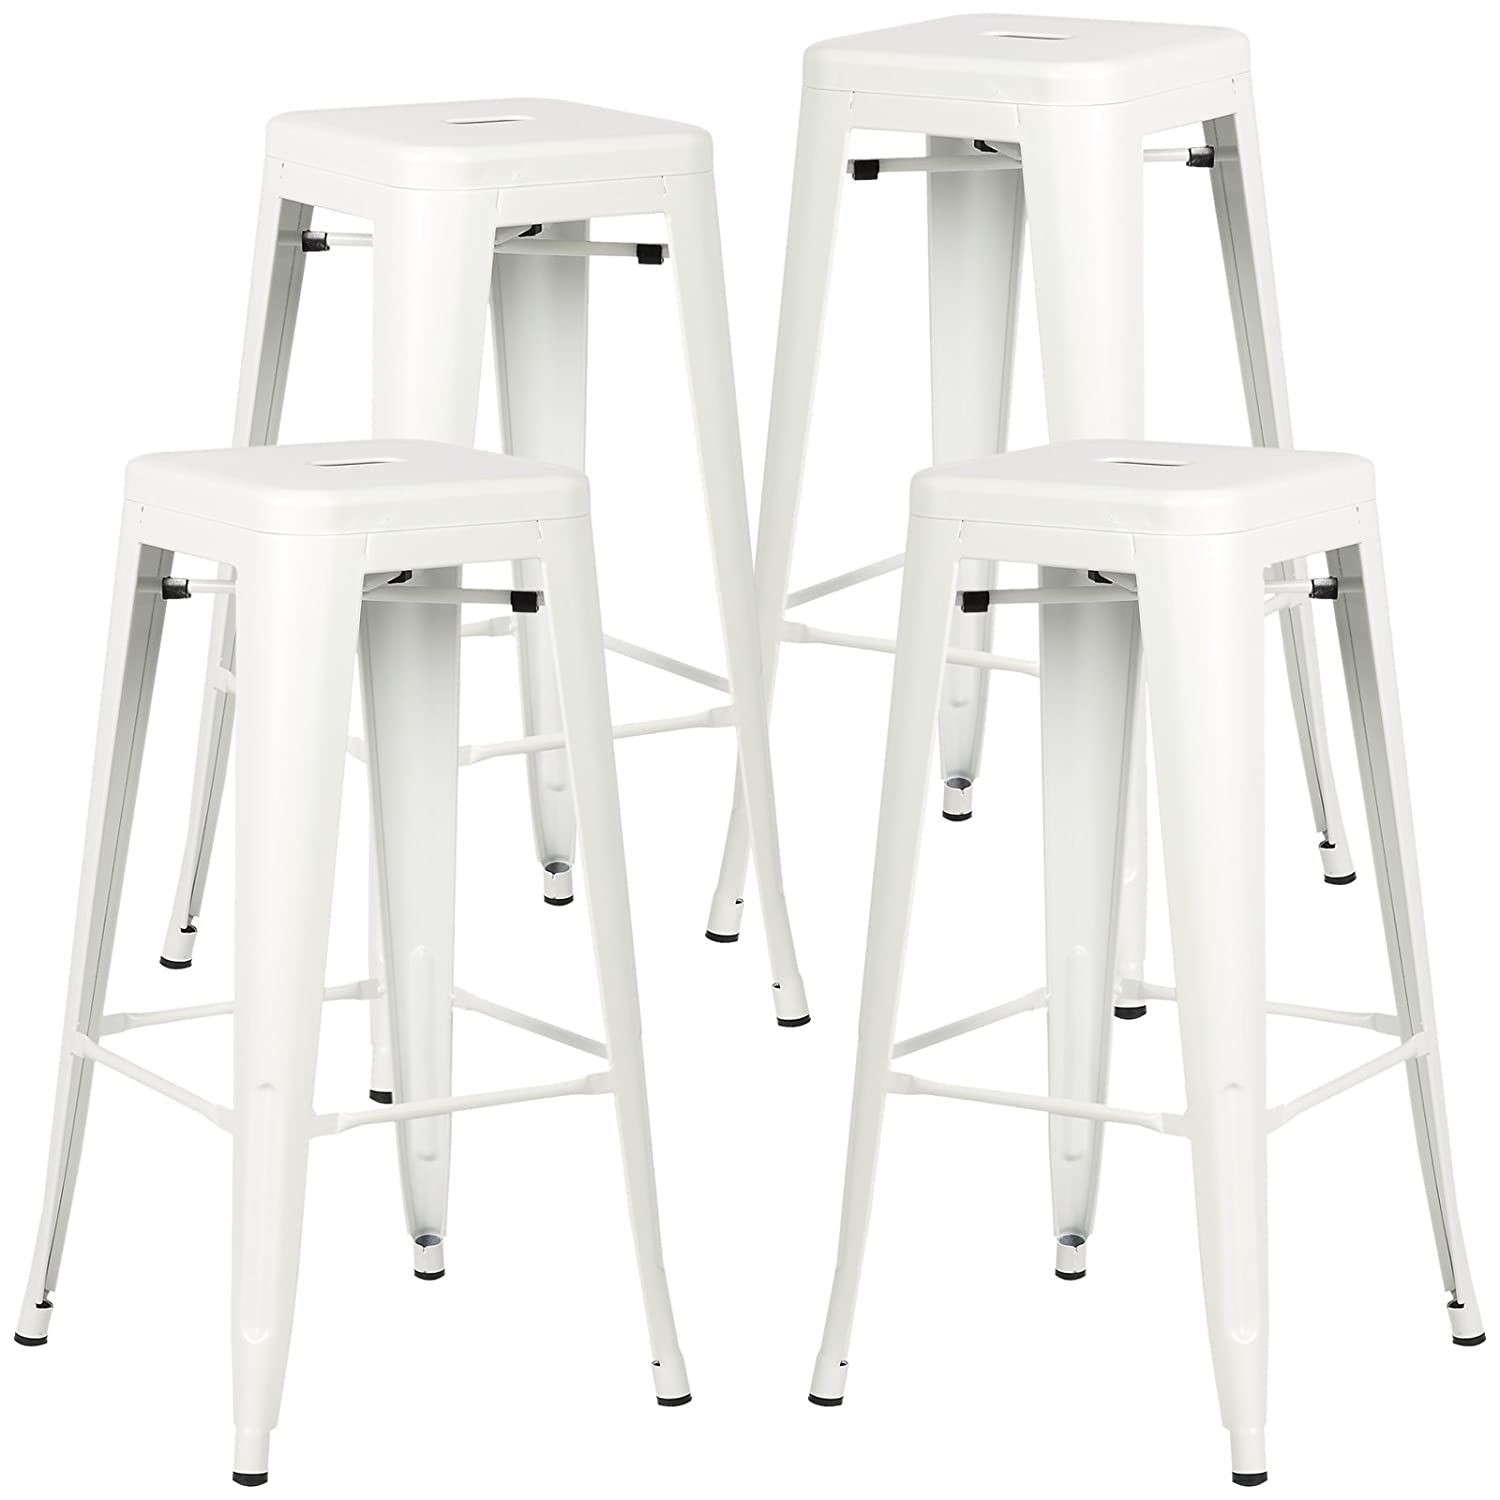 Poly and Bark Trattoria 30 Inch Metal Bar Counter Stool, Industrial, Backless, Stackable in White Set of 4